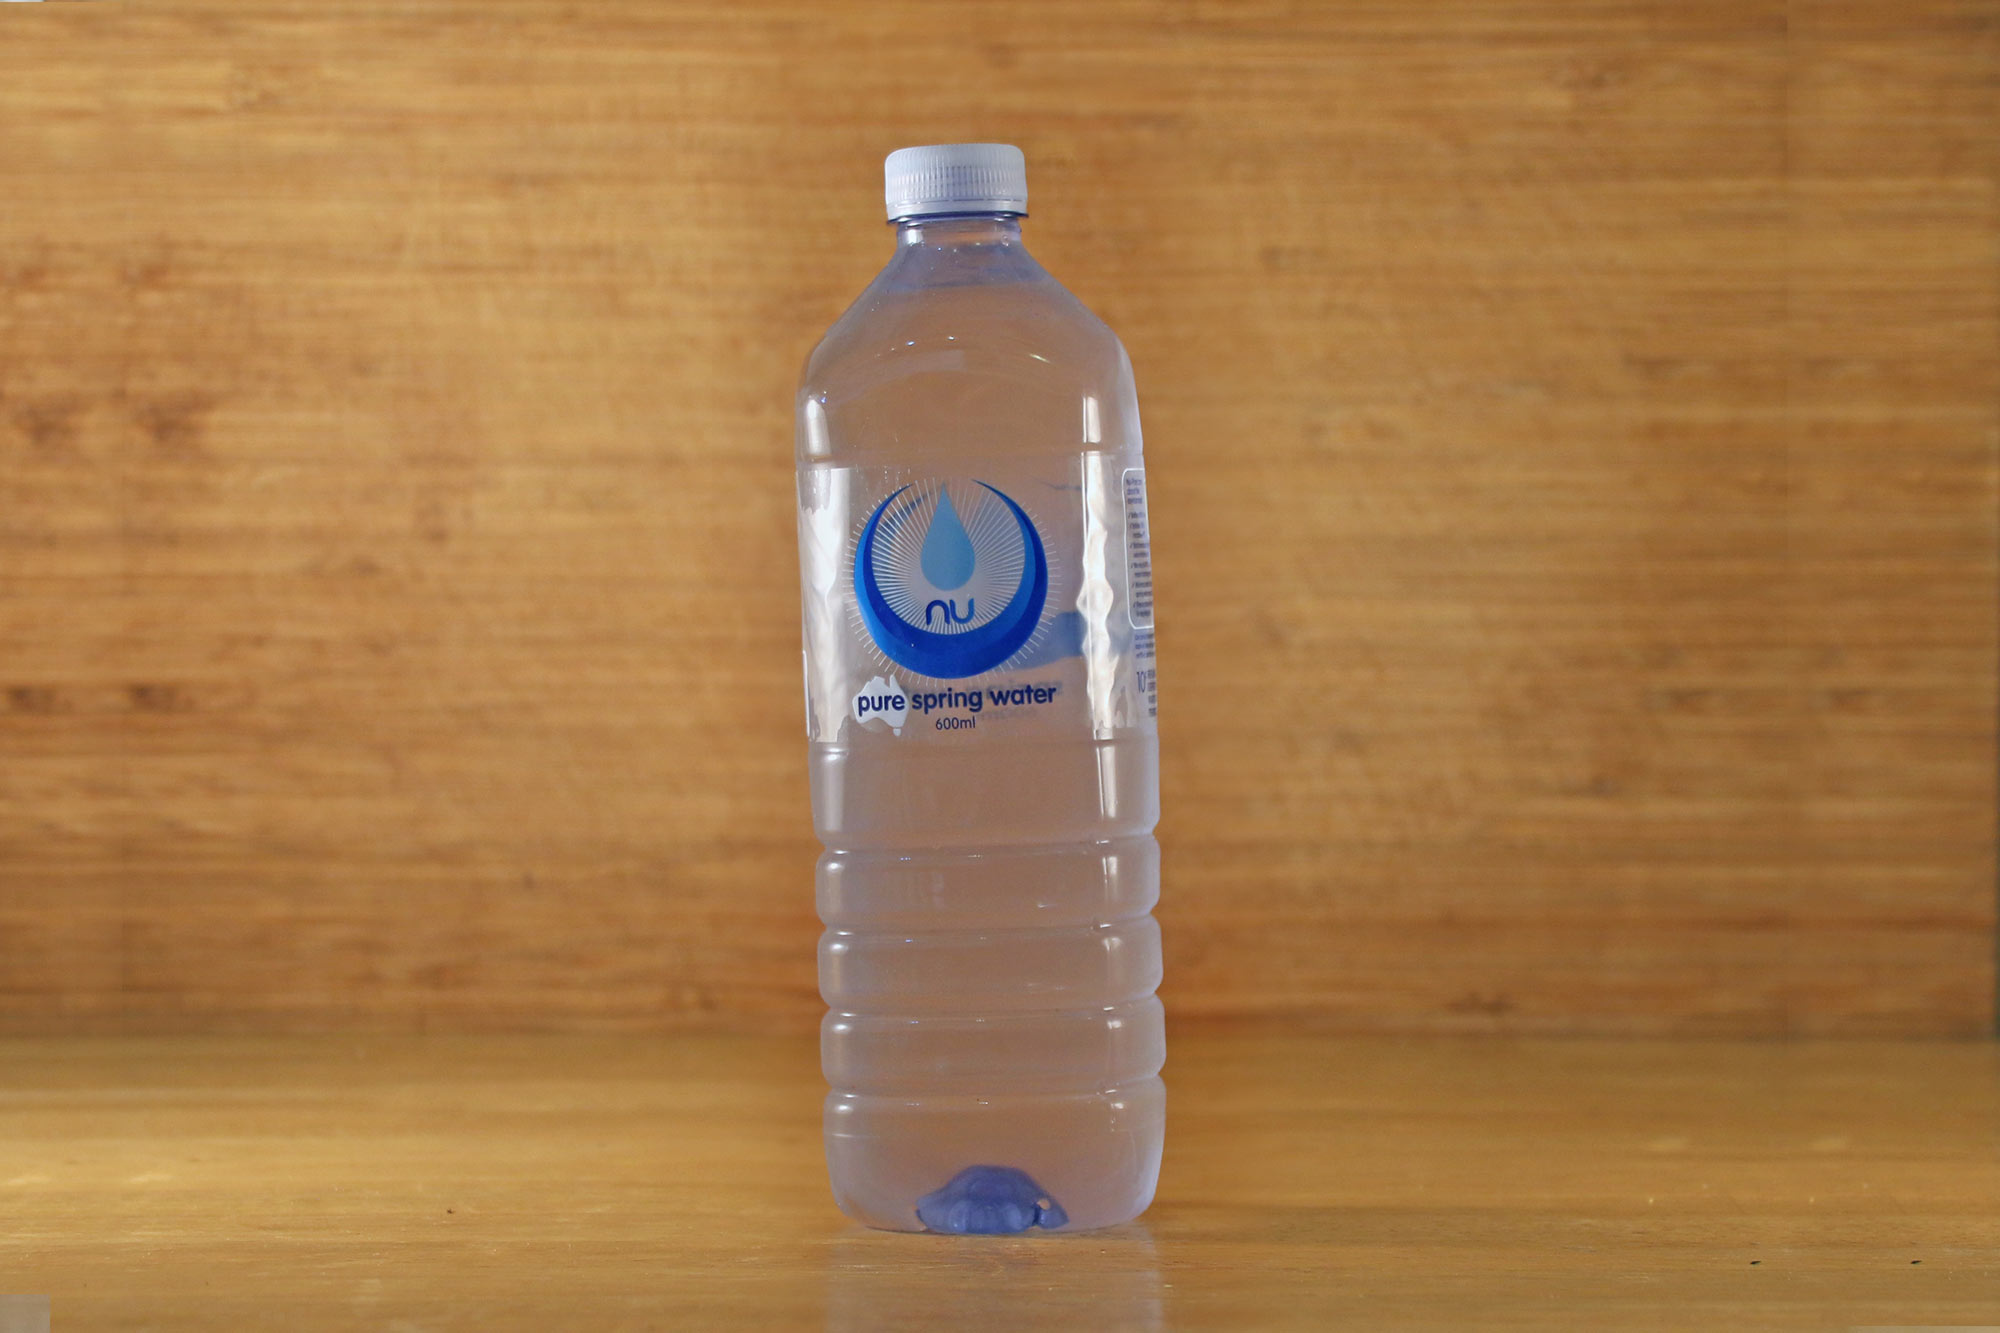 nu pure spring water